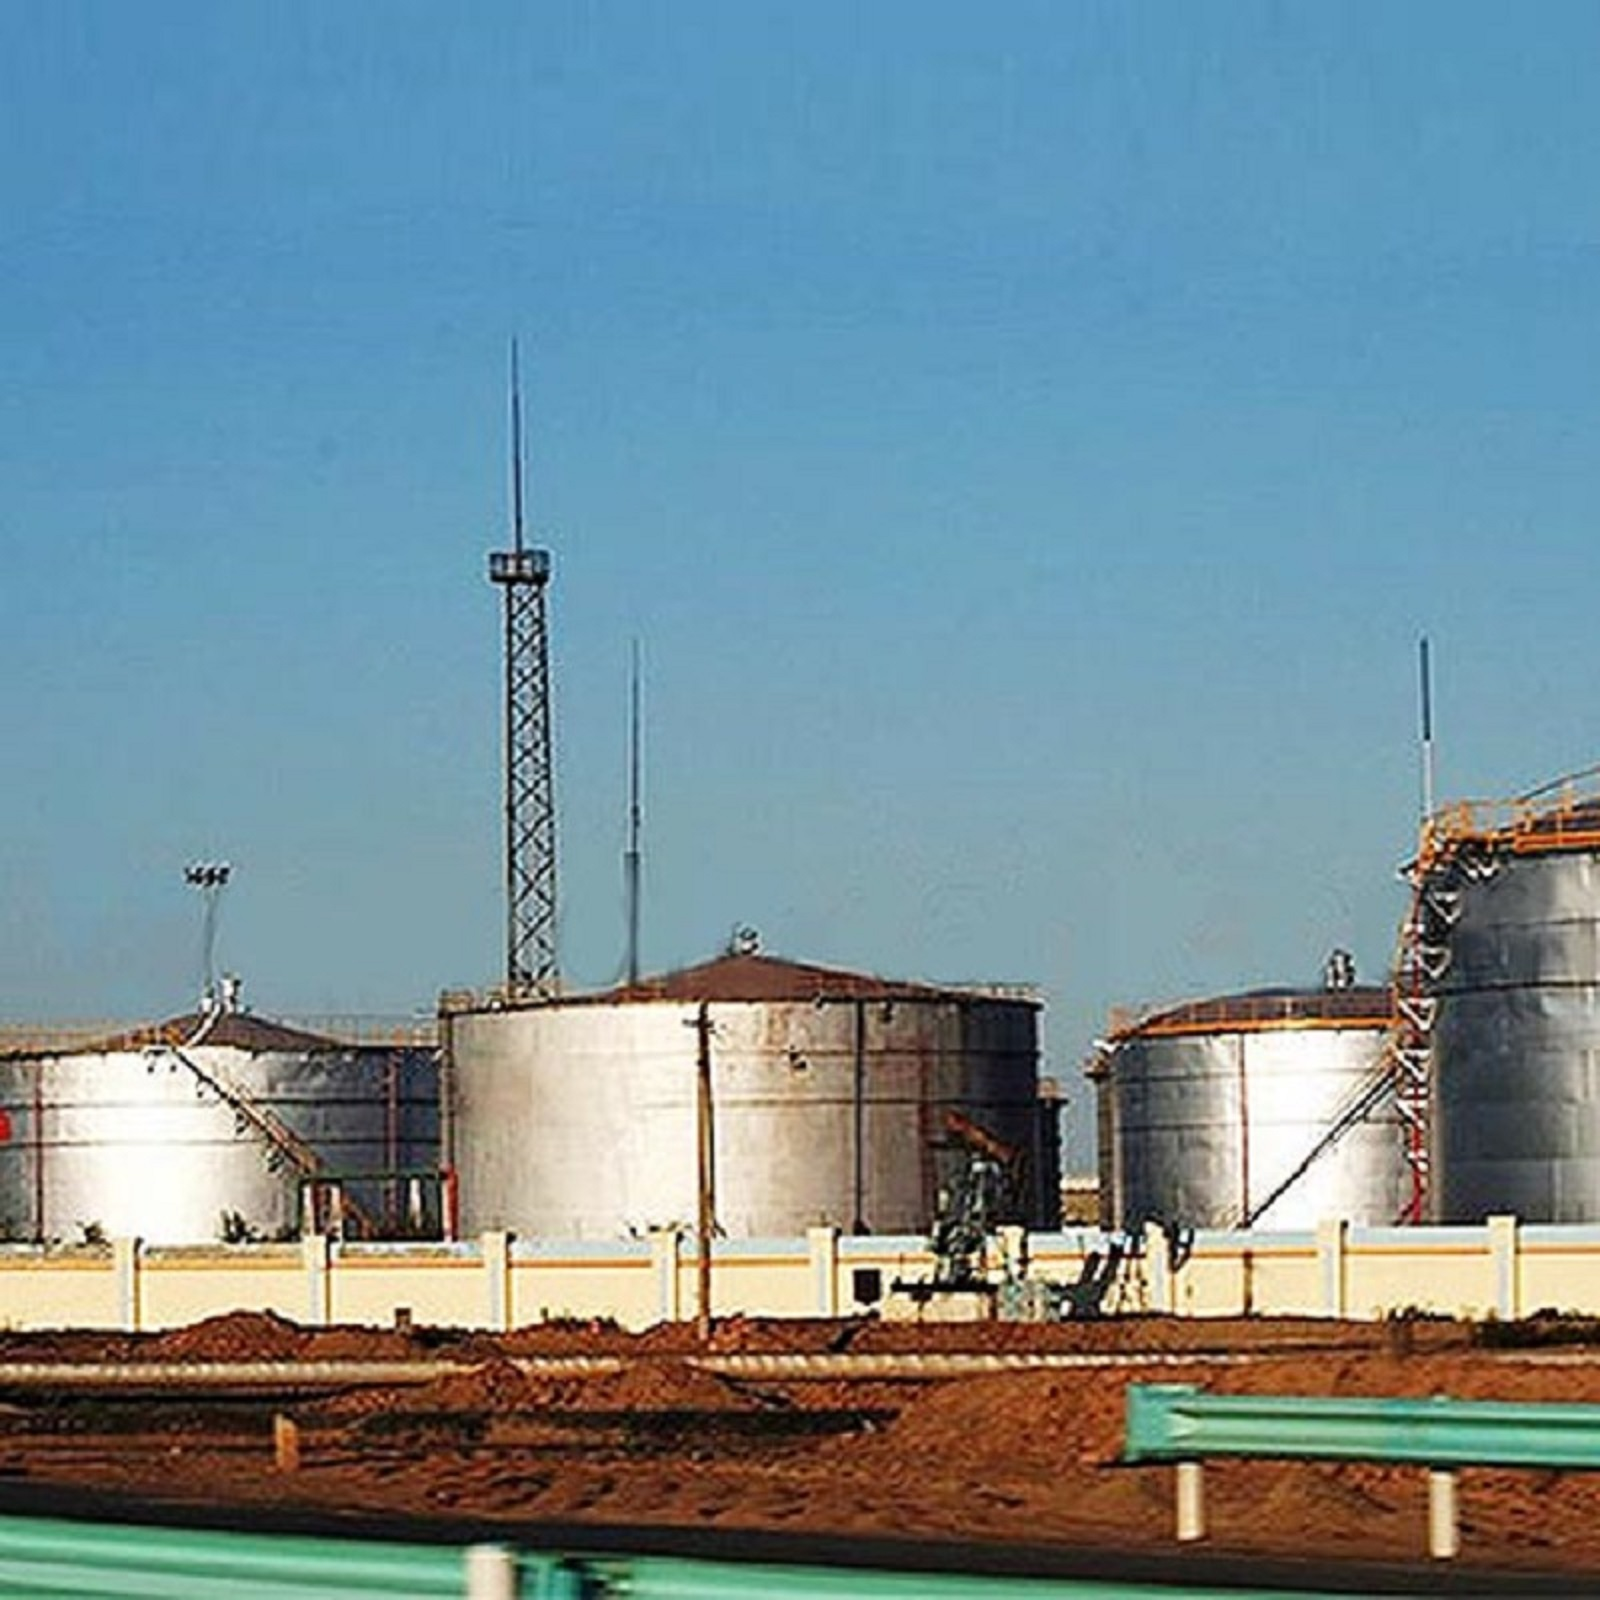 cone-roof-storage-tank-potable-water-a36-api-650-260000-gal-副本